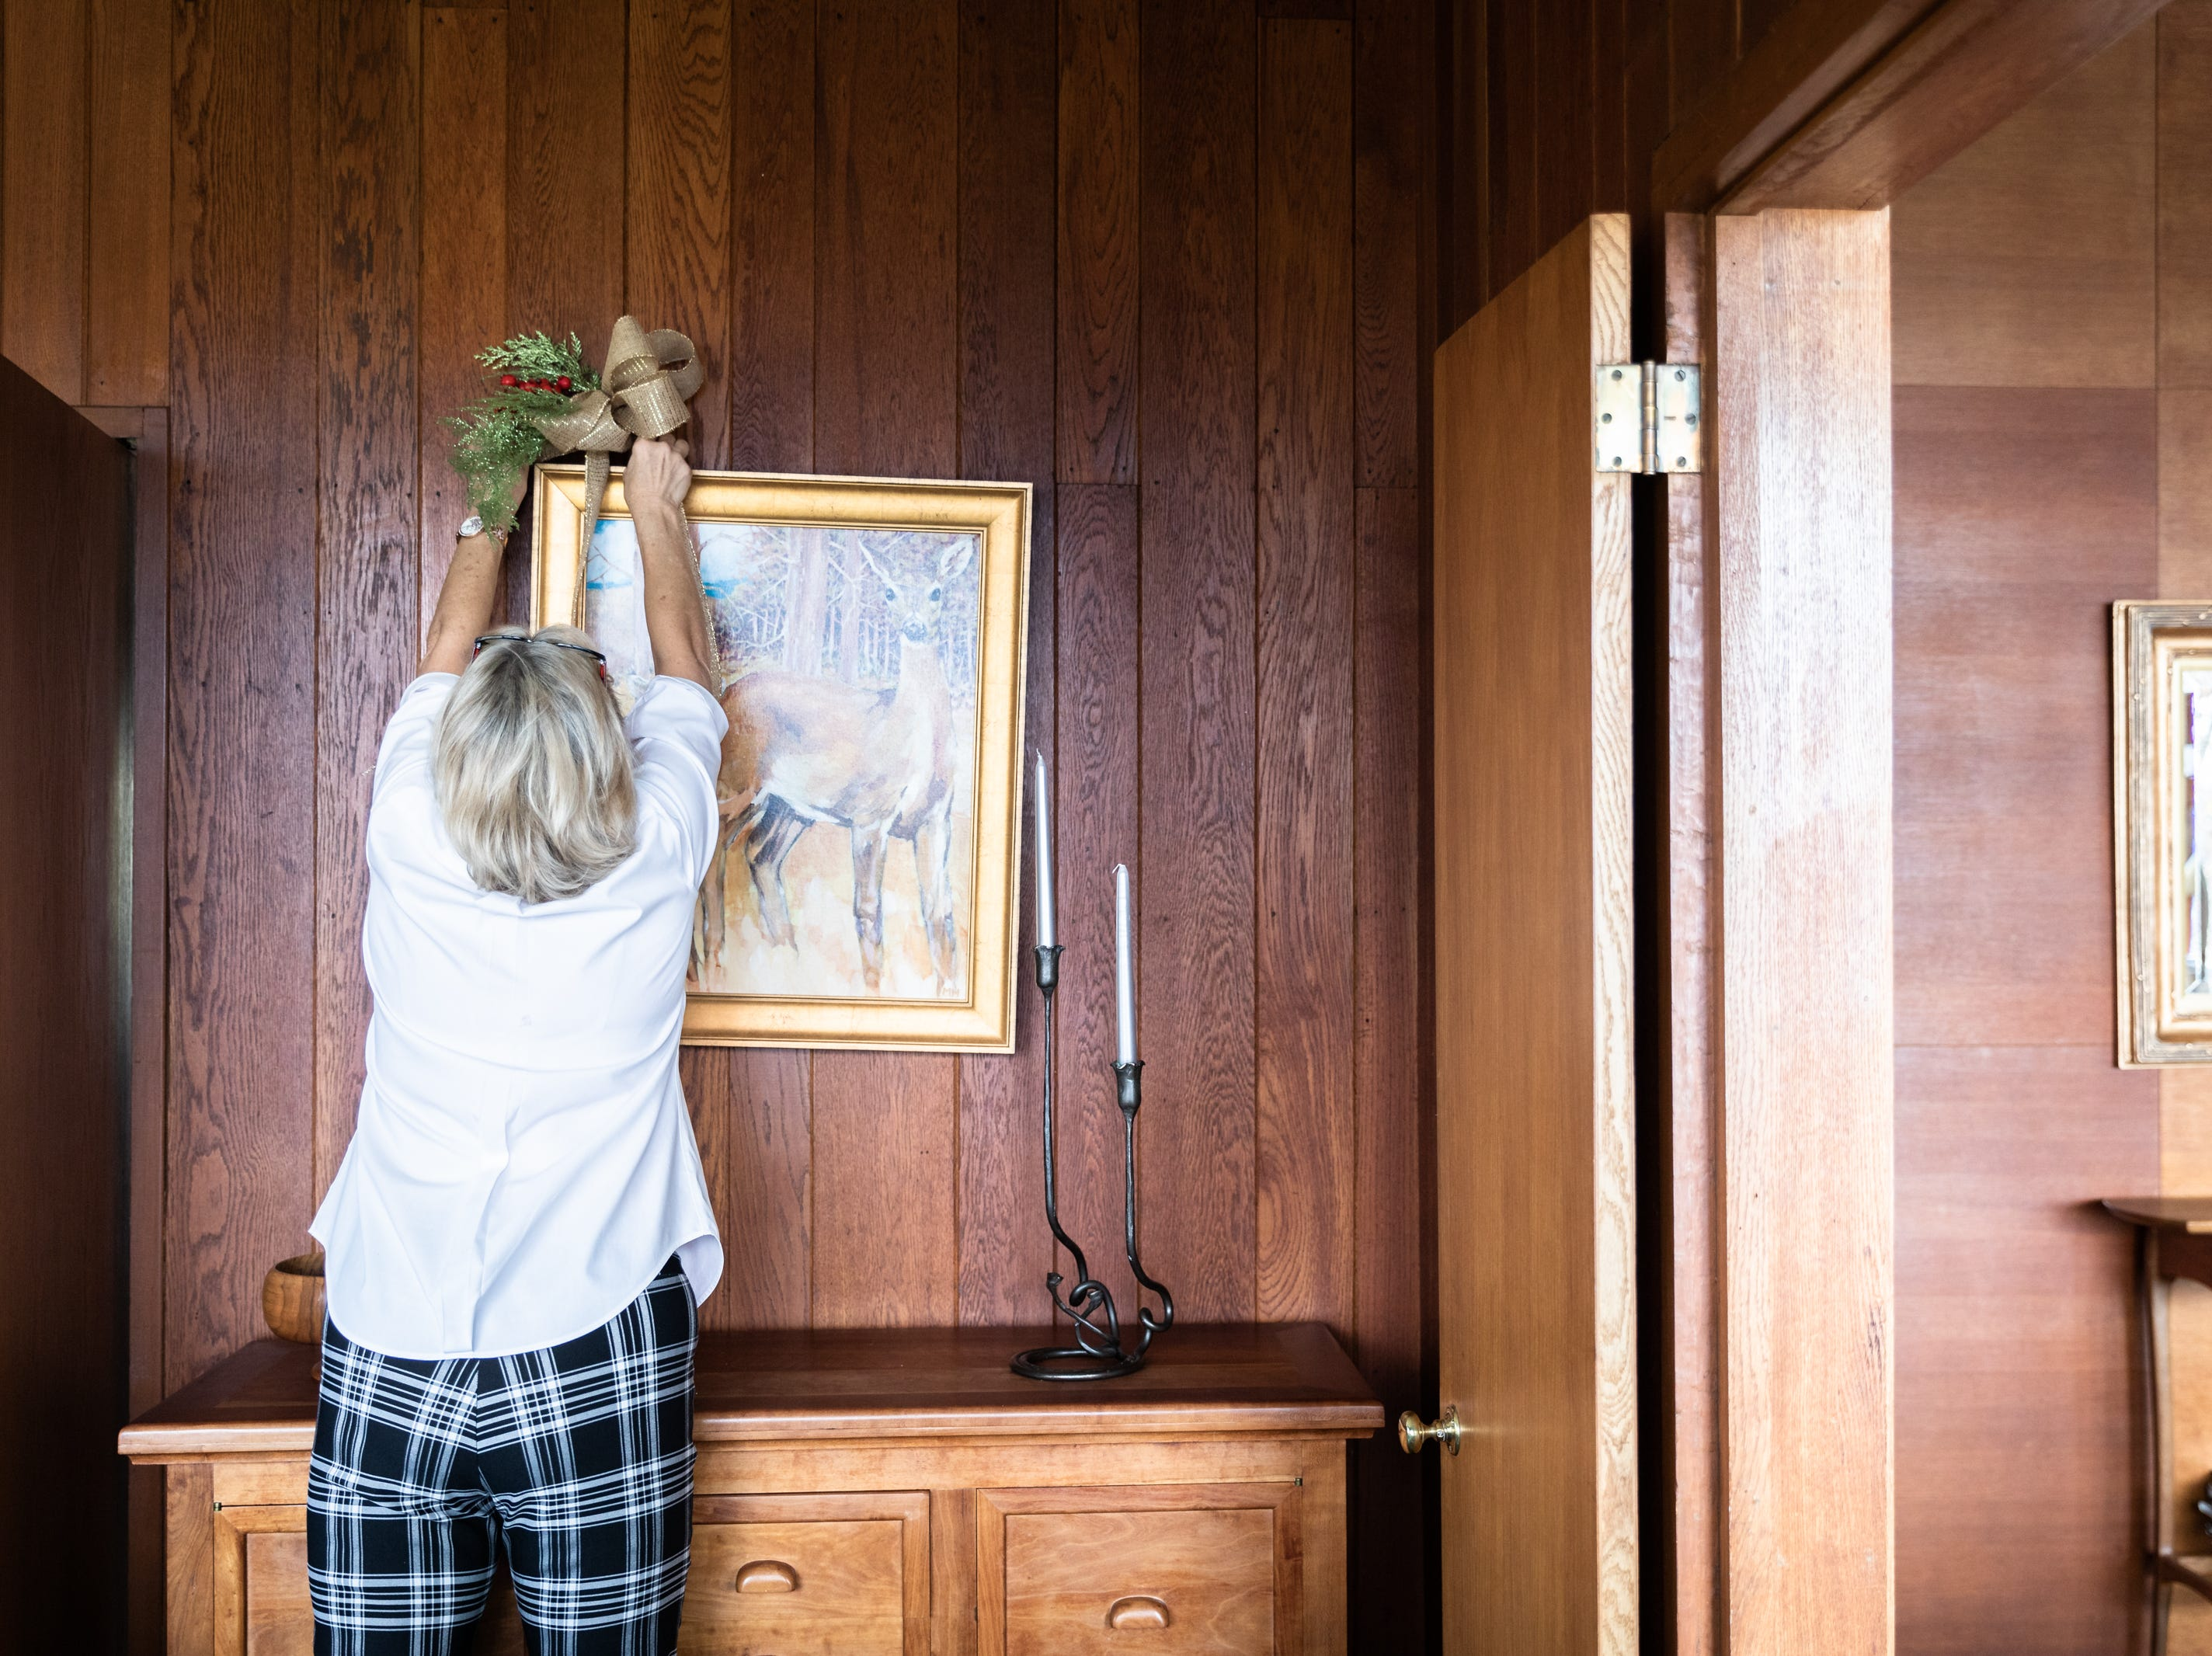 Kaye Myers, of Asheville, a member of the Governor's Western Residence Board of Directors, places a bow in the dining room of the residence on Patton Mountain Road in Asheville, Nov. 29, 2018.